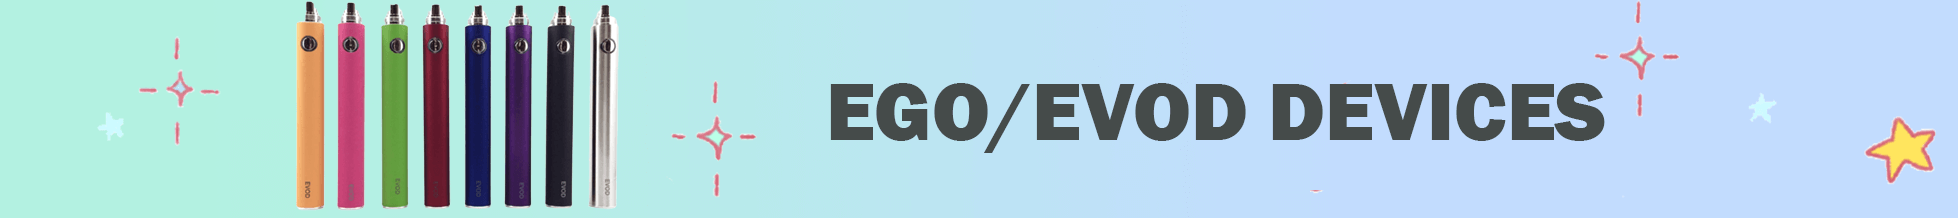 ego-evod-devices-banner.png